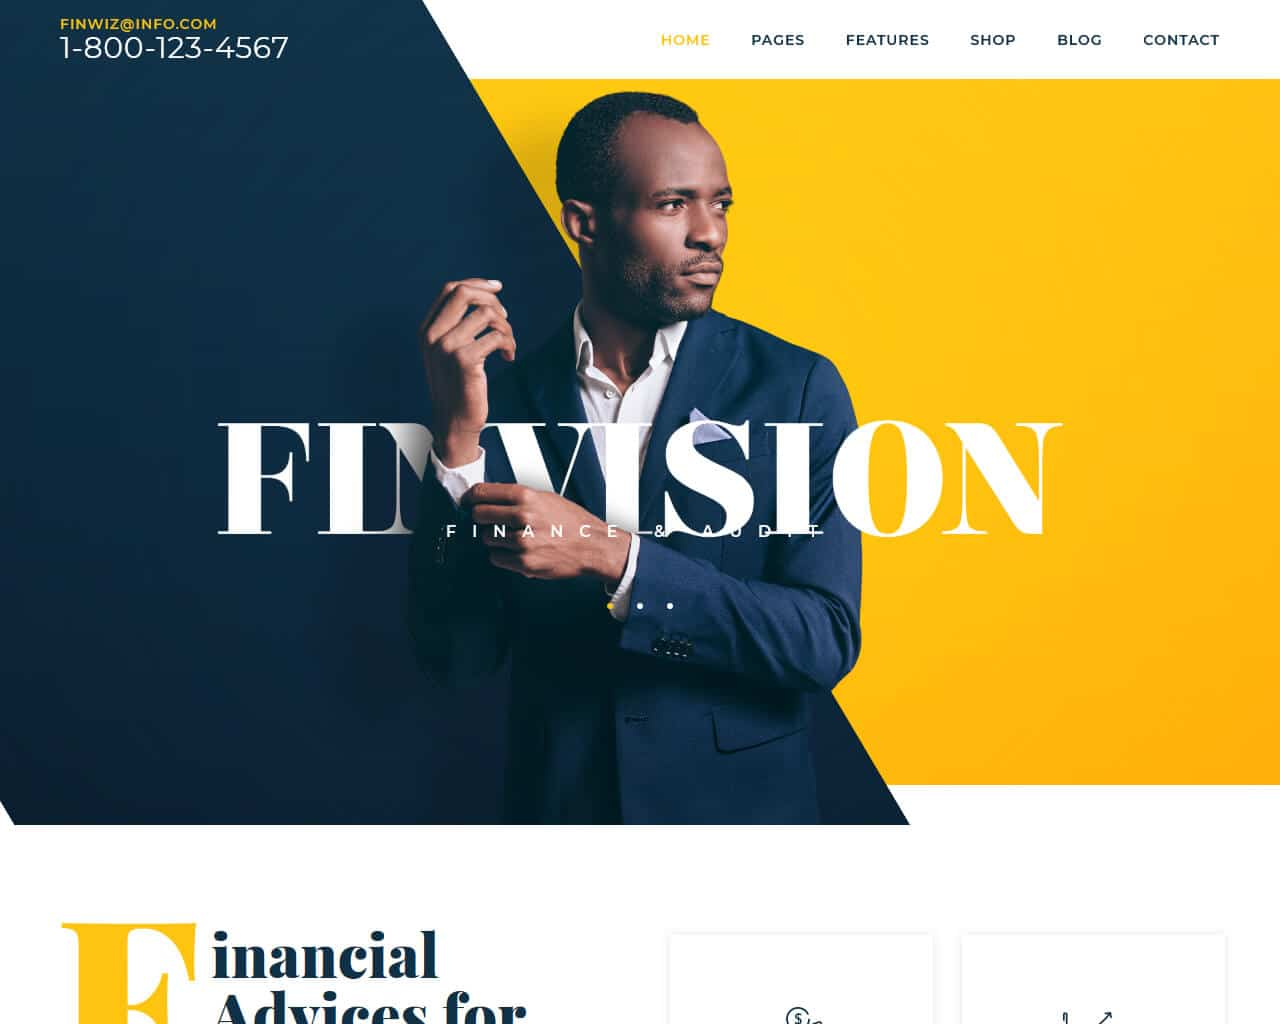 Finwiz Website Template